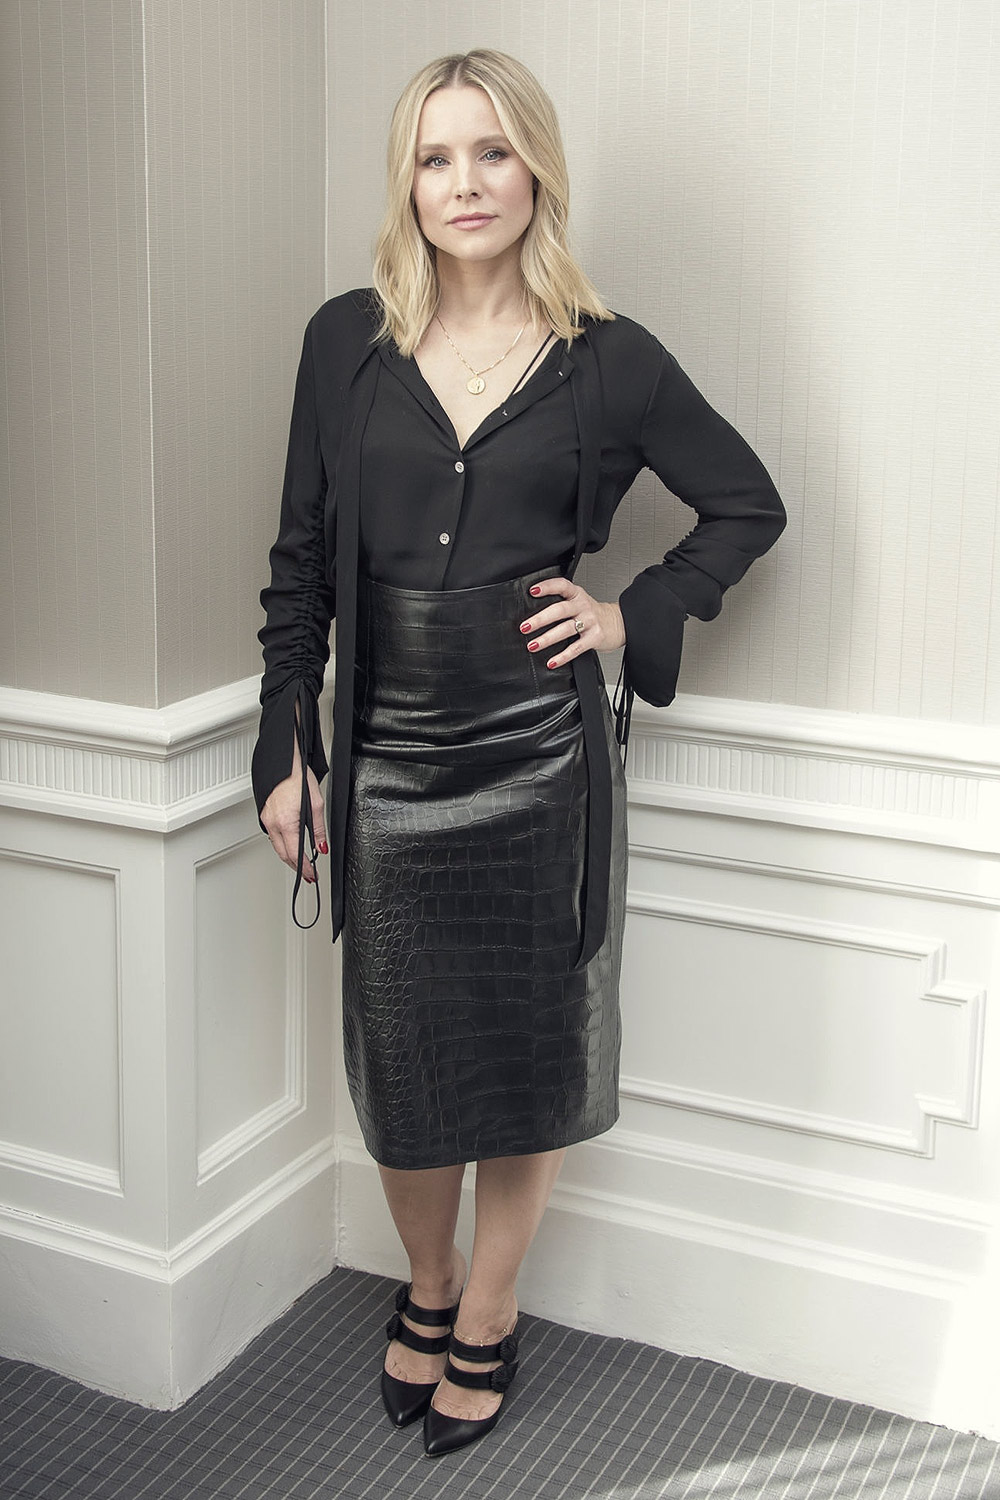 Kristen Bell attends The Good Place Press Conference